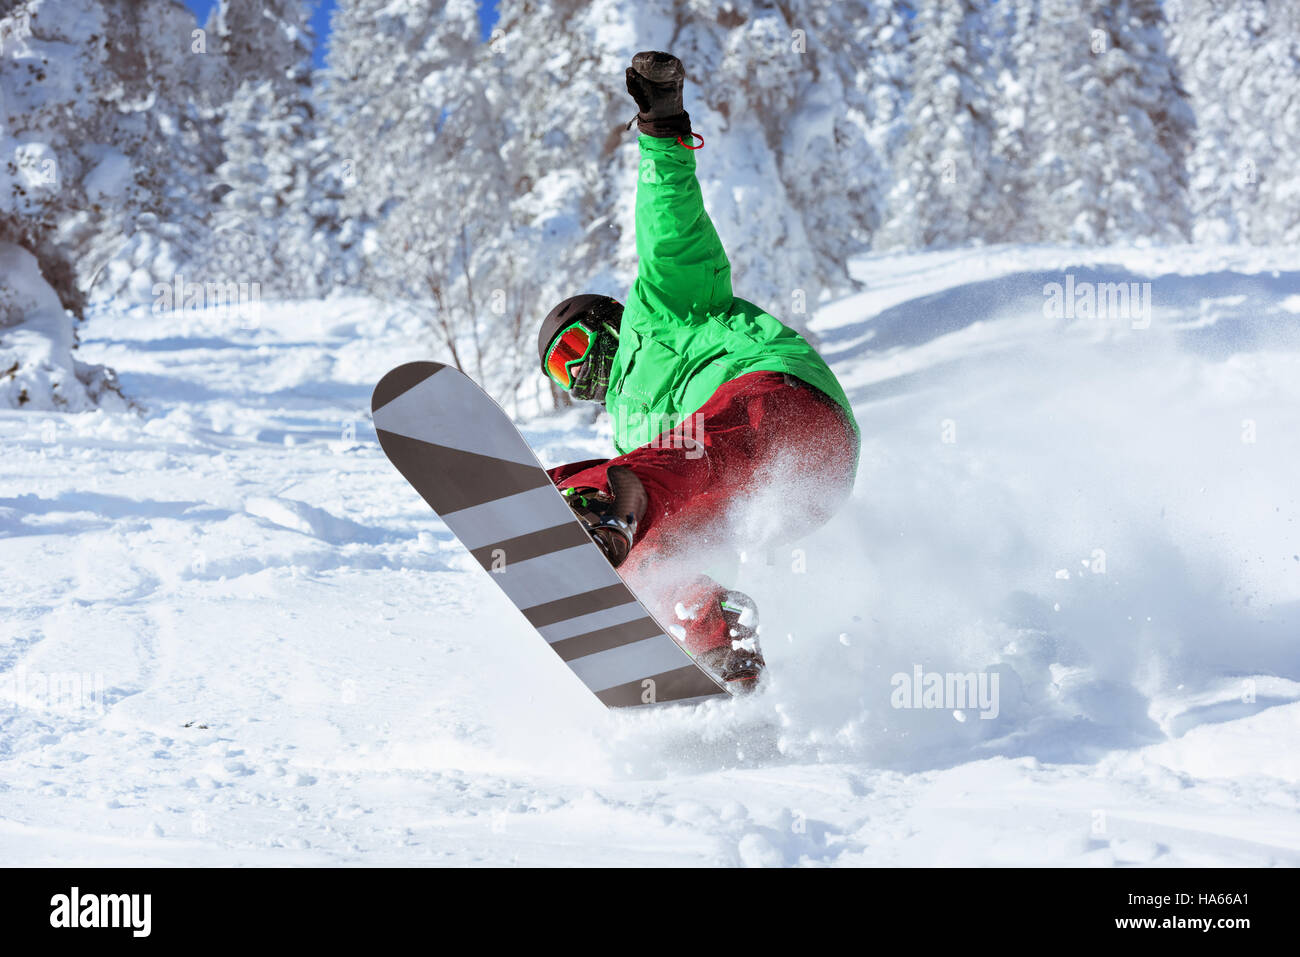 Skieur snowboarder freeride sauts forest Photo Stock